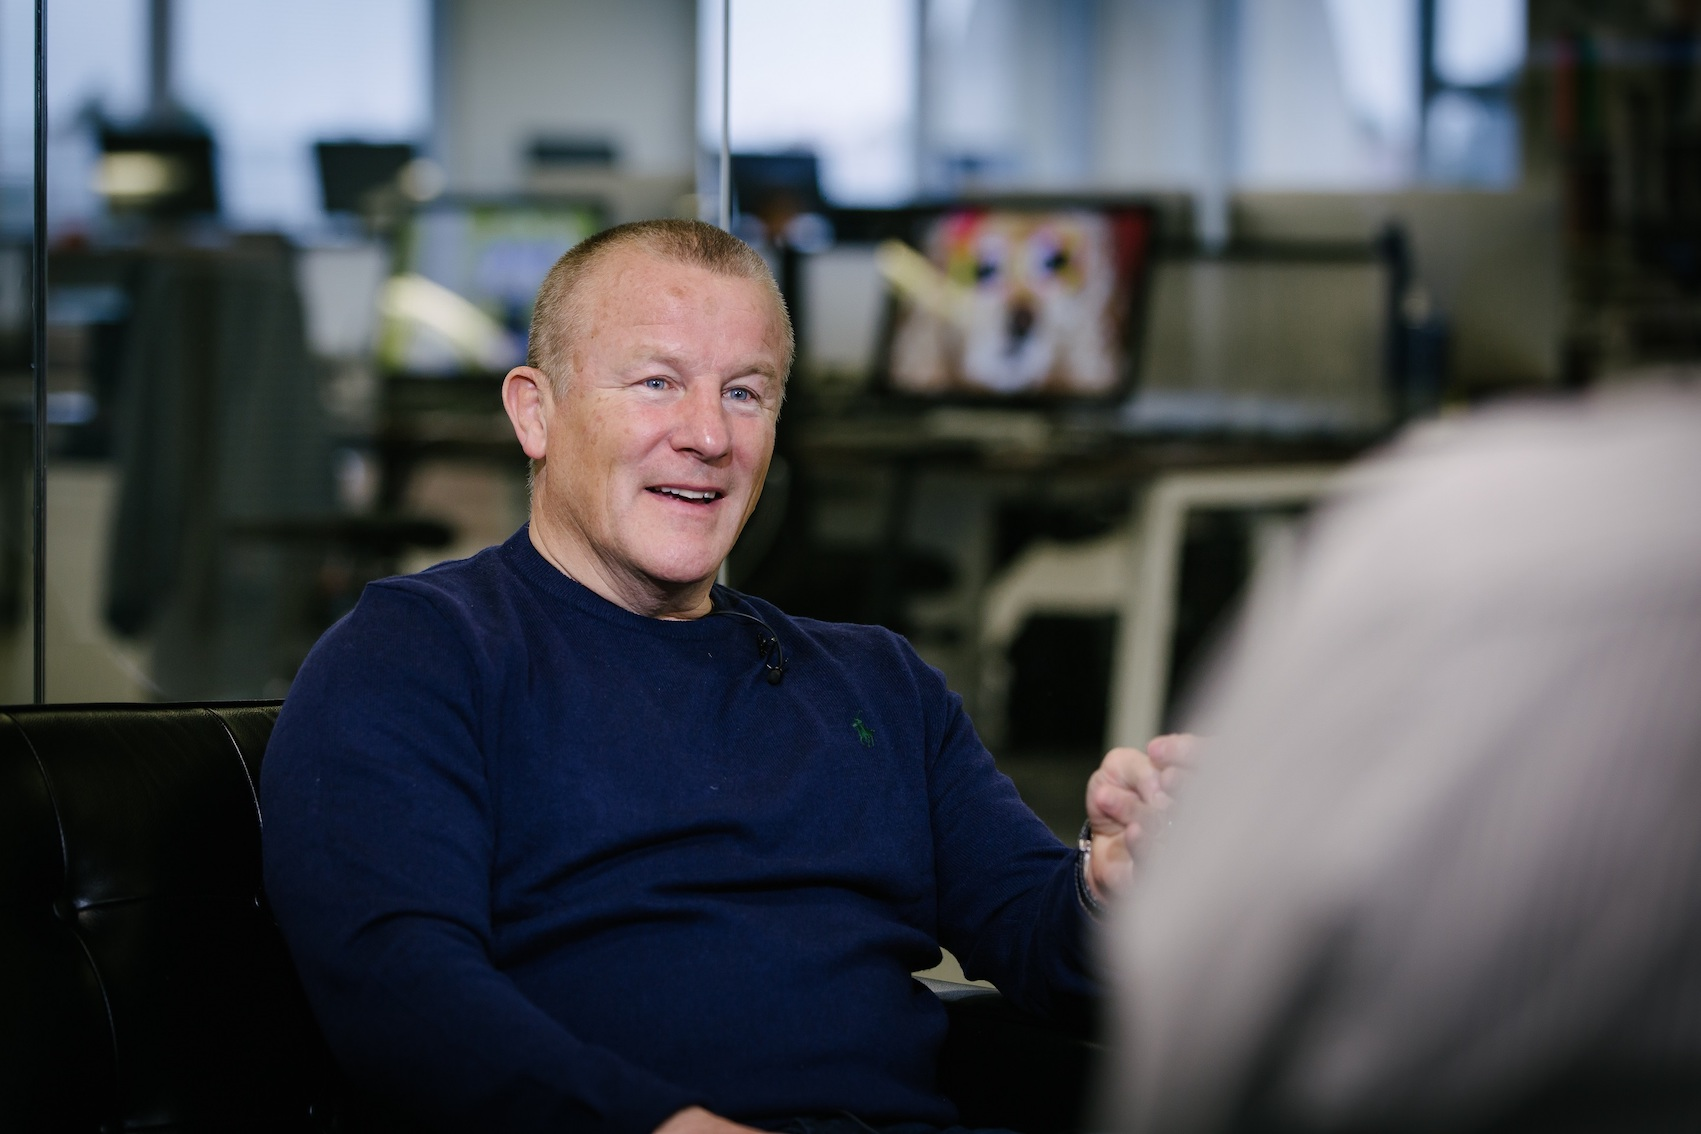 Neil Woodford ups stake in P2P fund to £100m just in time for Christmas